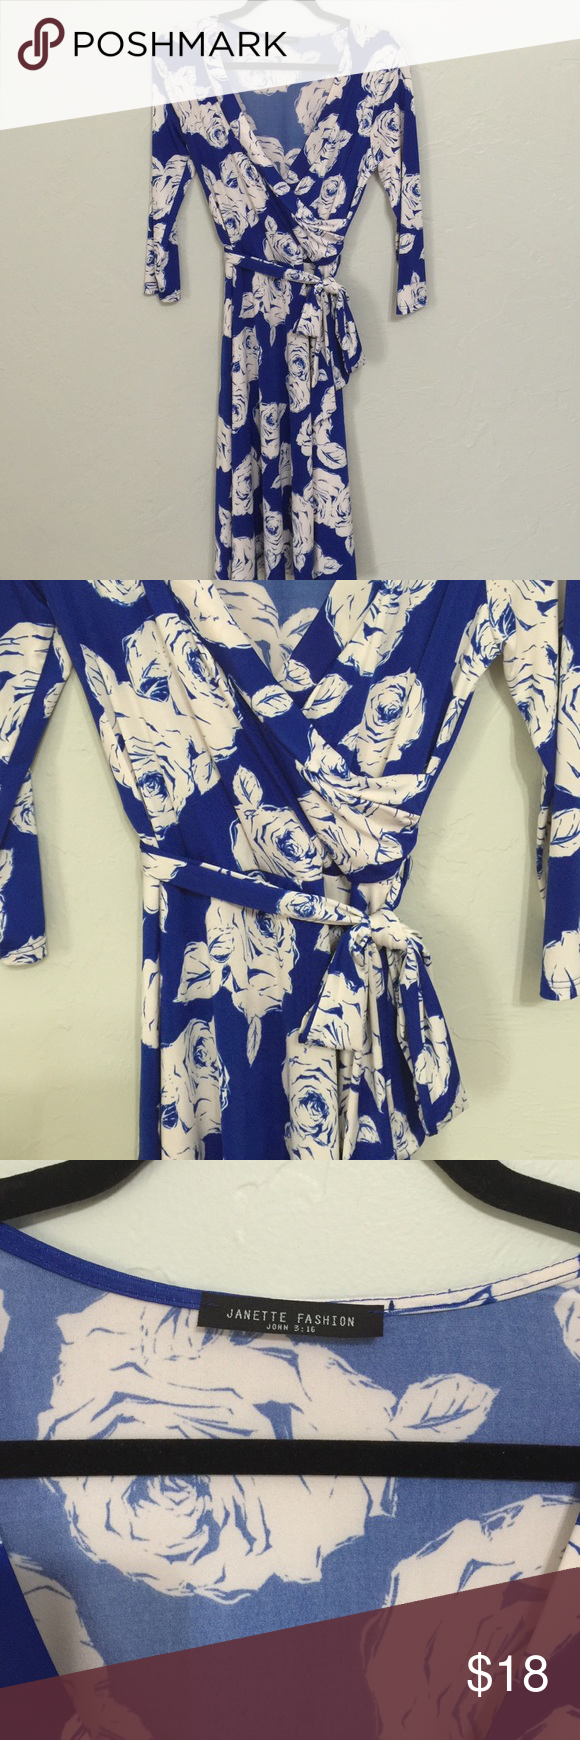 Blue faux wrap dress w/ white rose pattern - sz M BNWOT - never worn. Took off tags after ordering but never worn. Dresses Long Sleeve